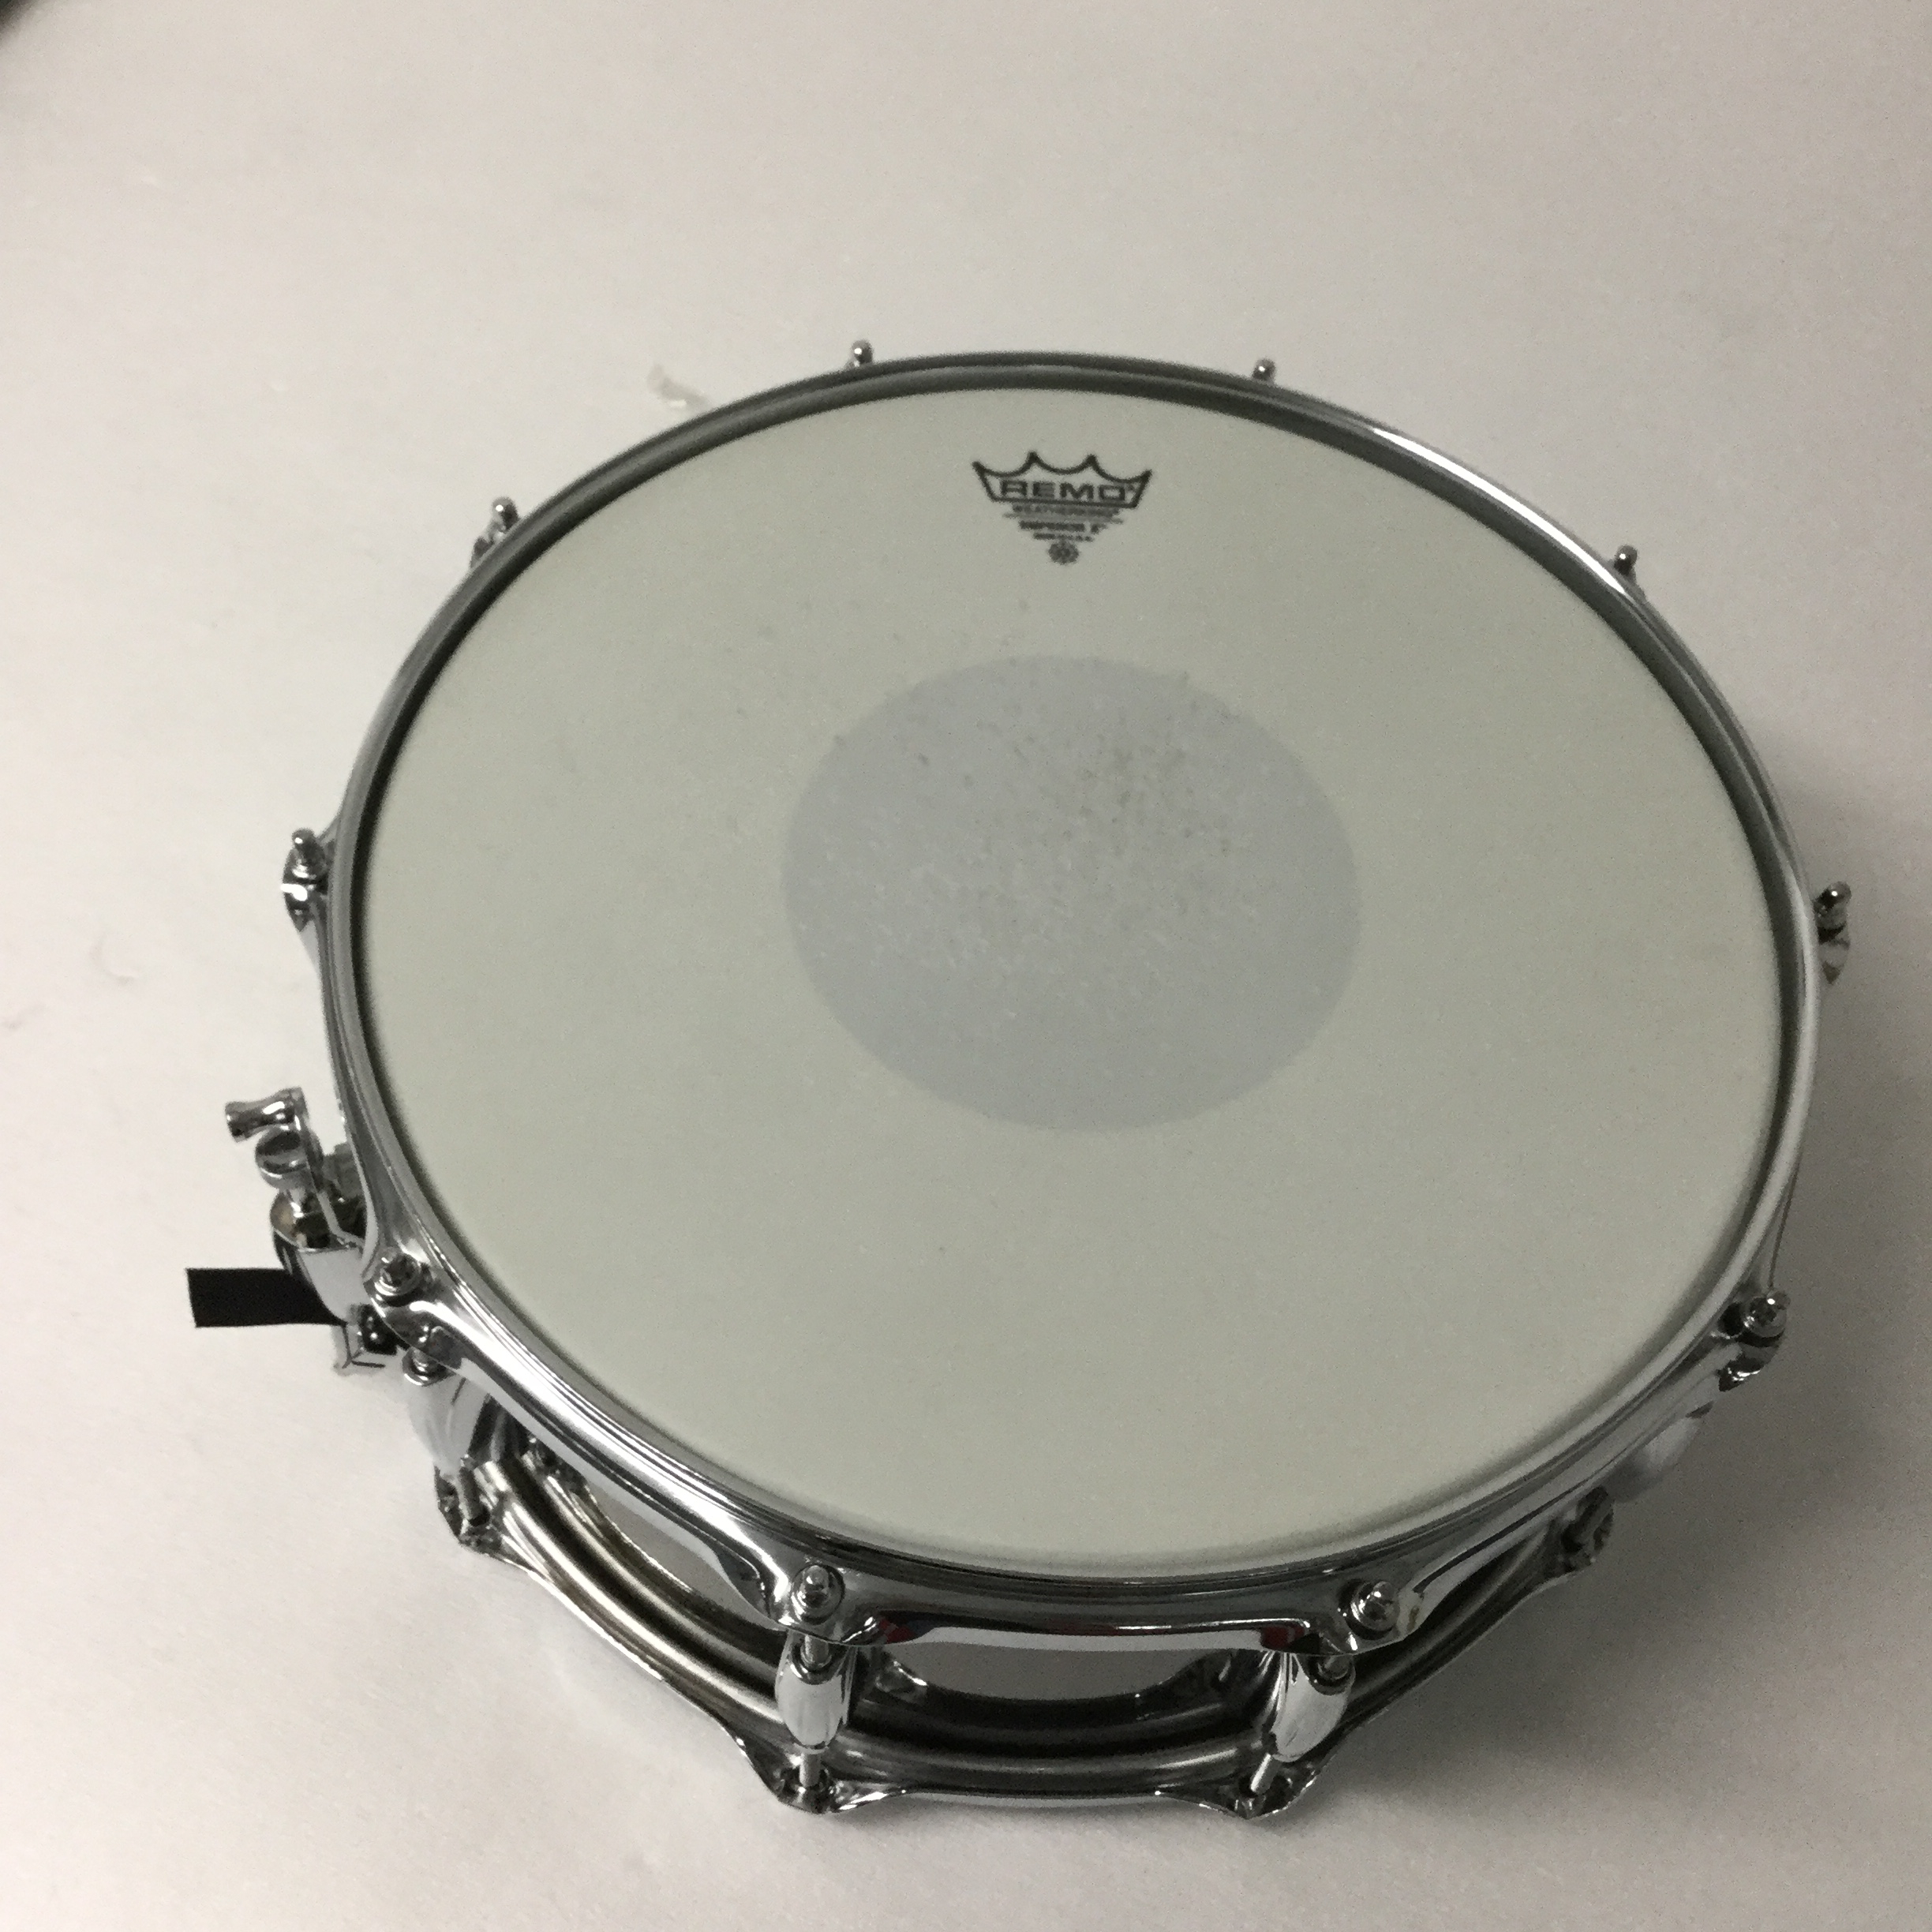 B-Ware) Gretsch Drums S-6514-TH Taylor Hawkins Signature Snare Drum ...